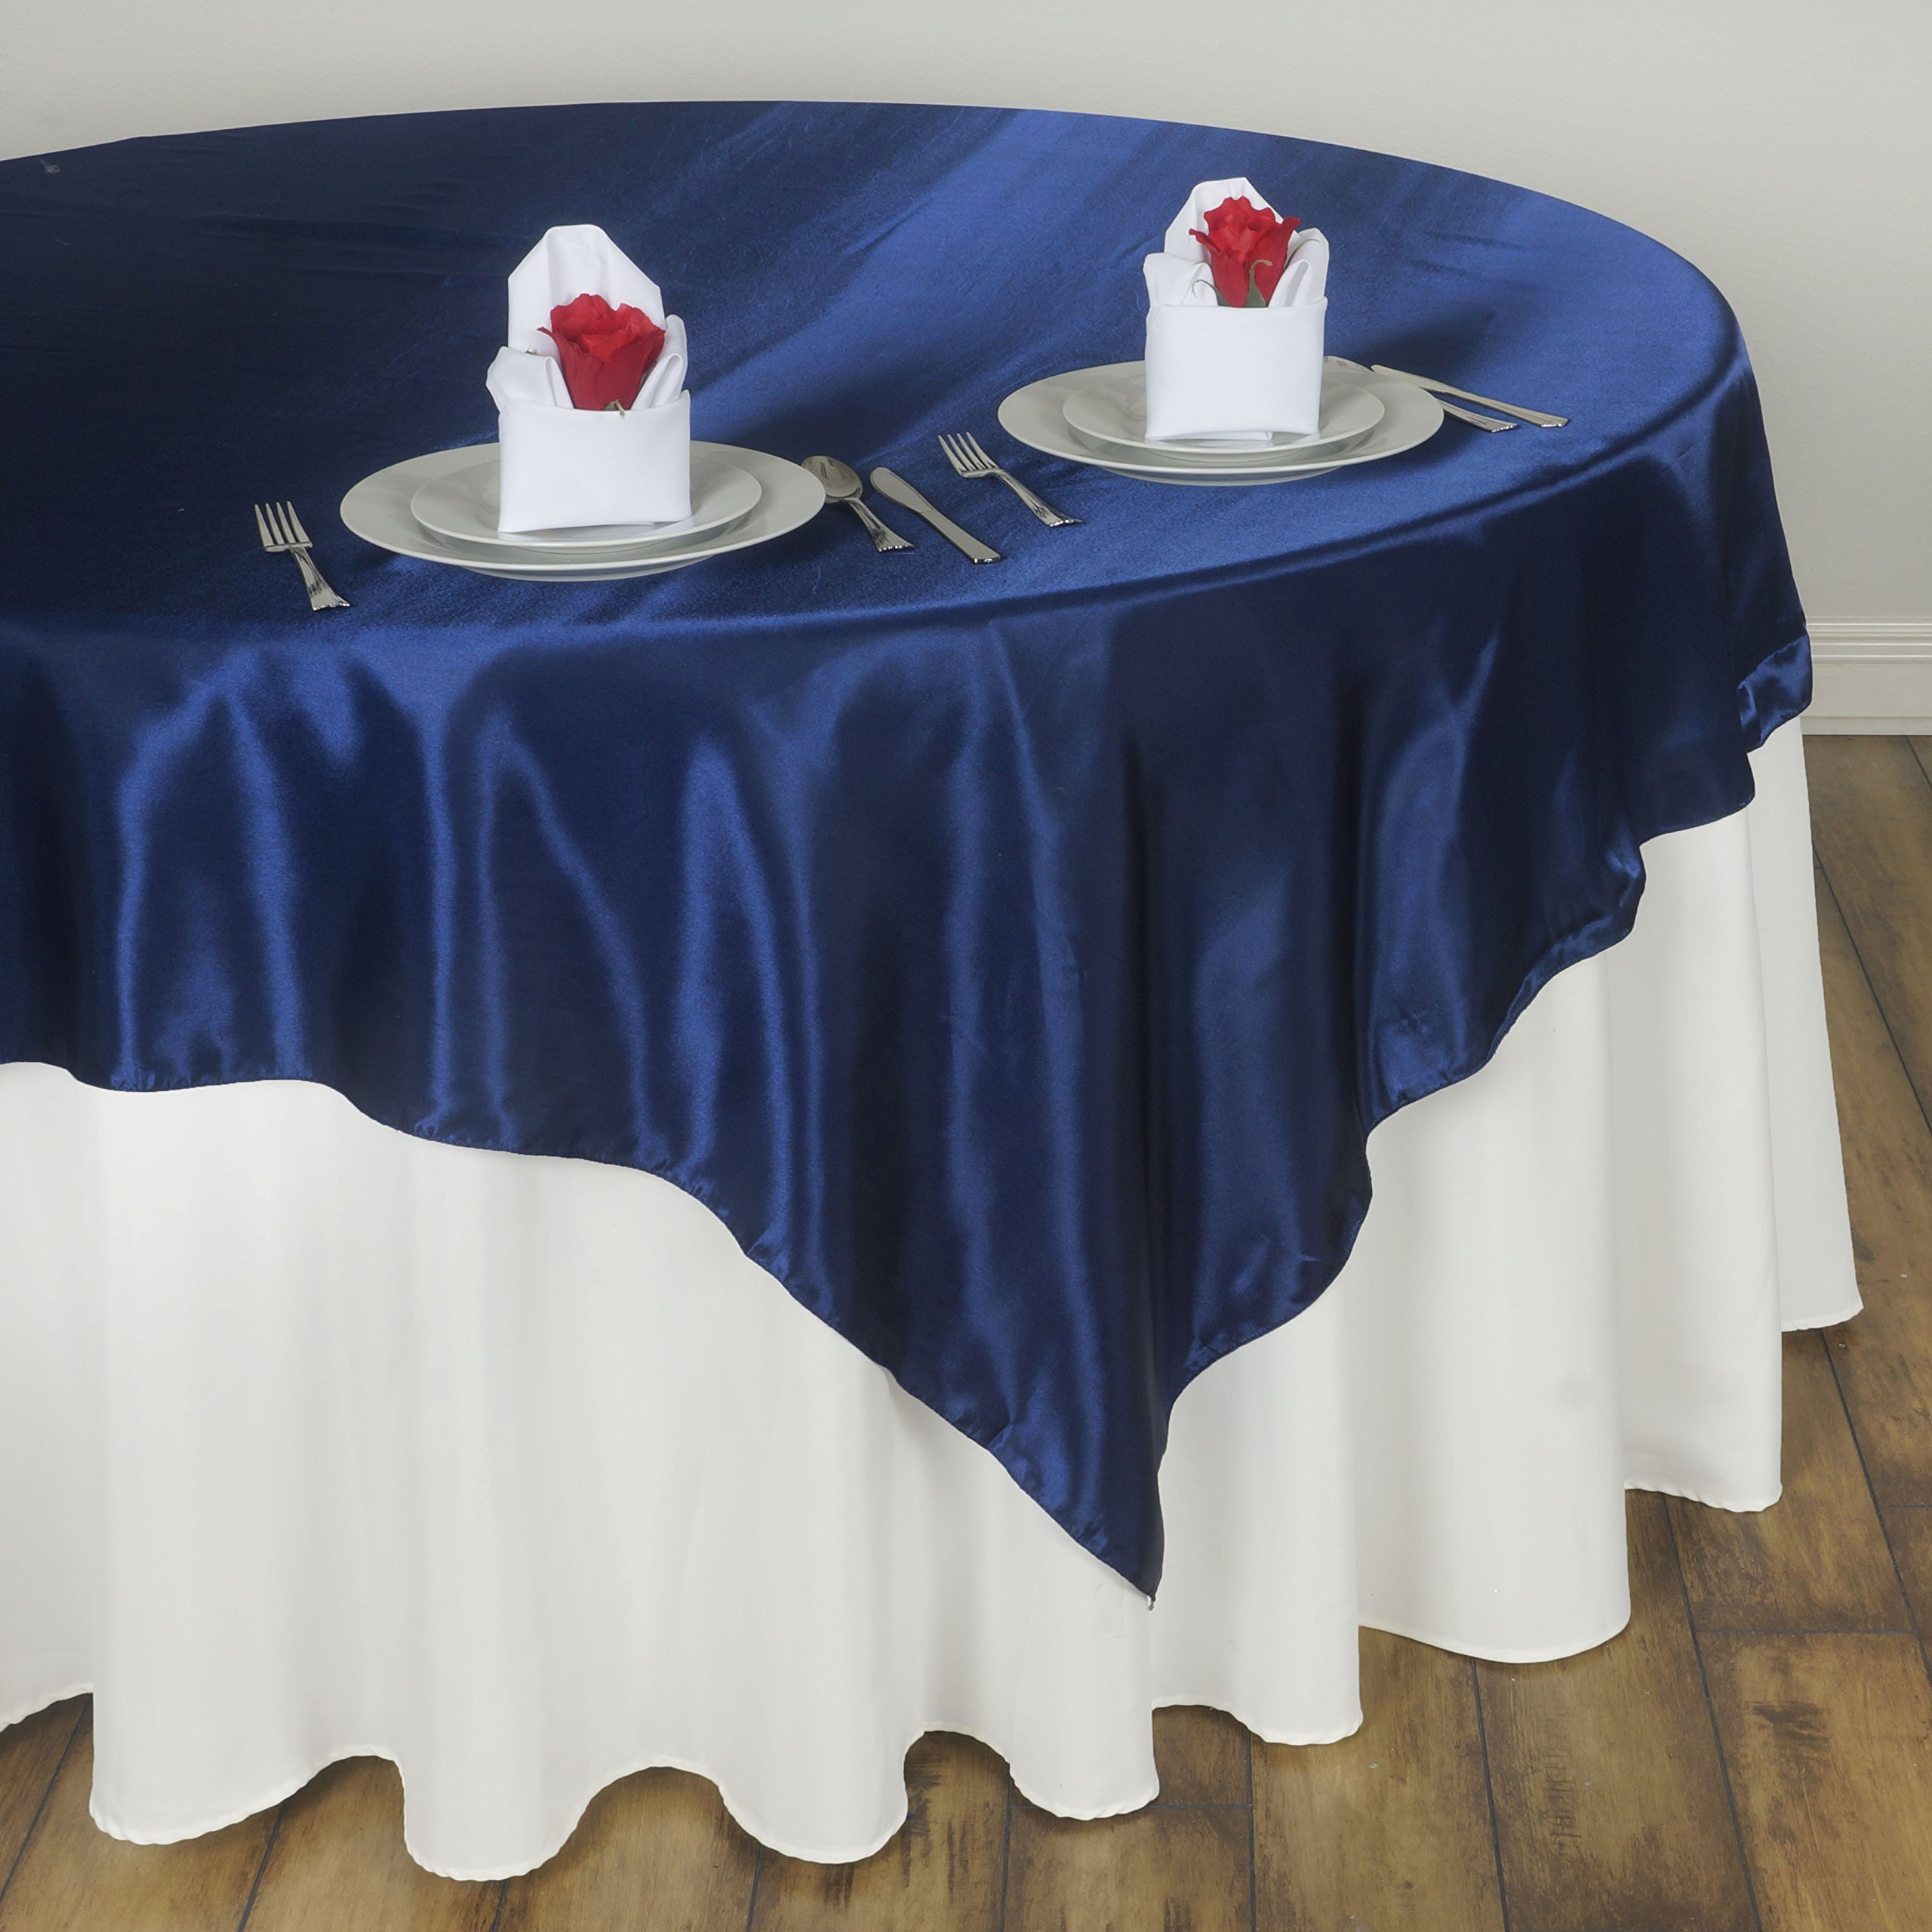 BalsaCircle 5 pcs 72x72-Inch Navy Blue Satin Table Overlays - Wedding Reception Party Catering Table Linens Decorations